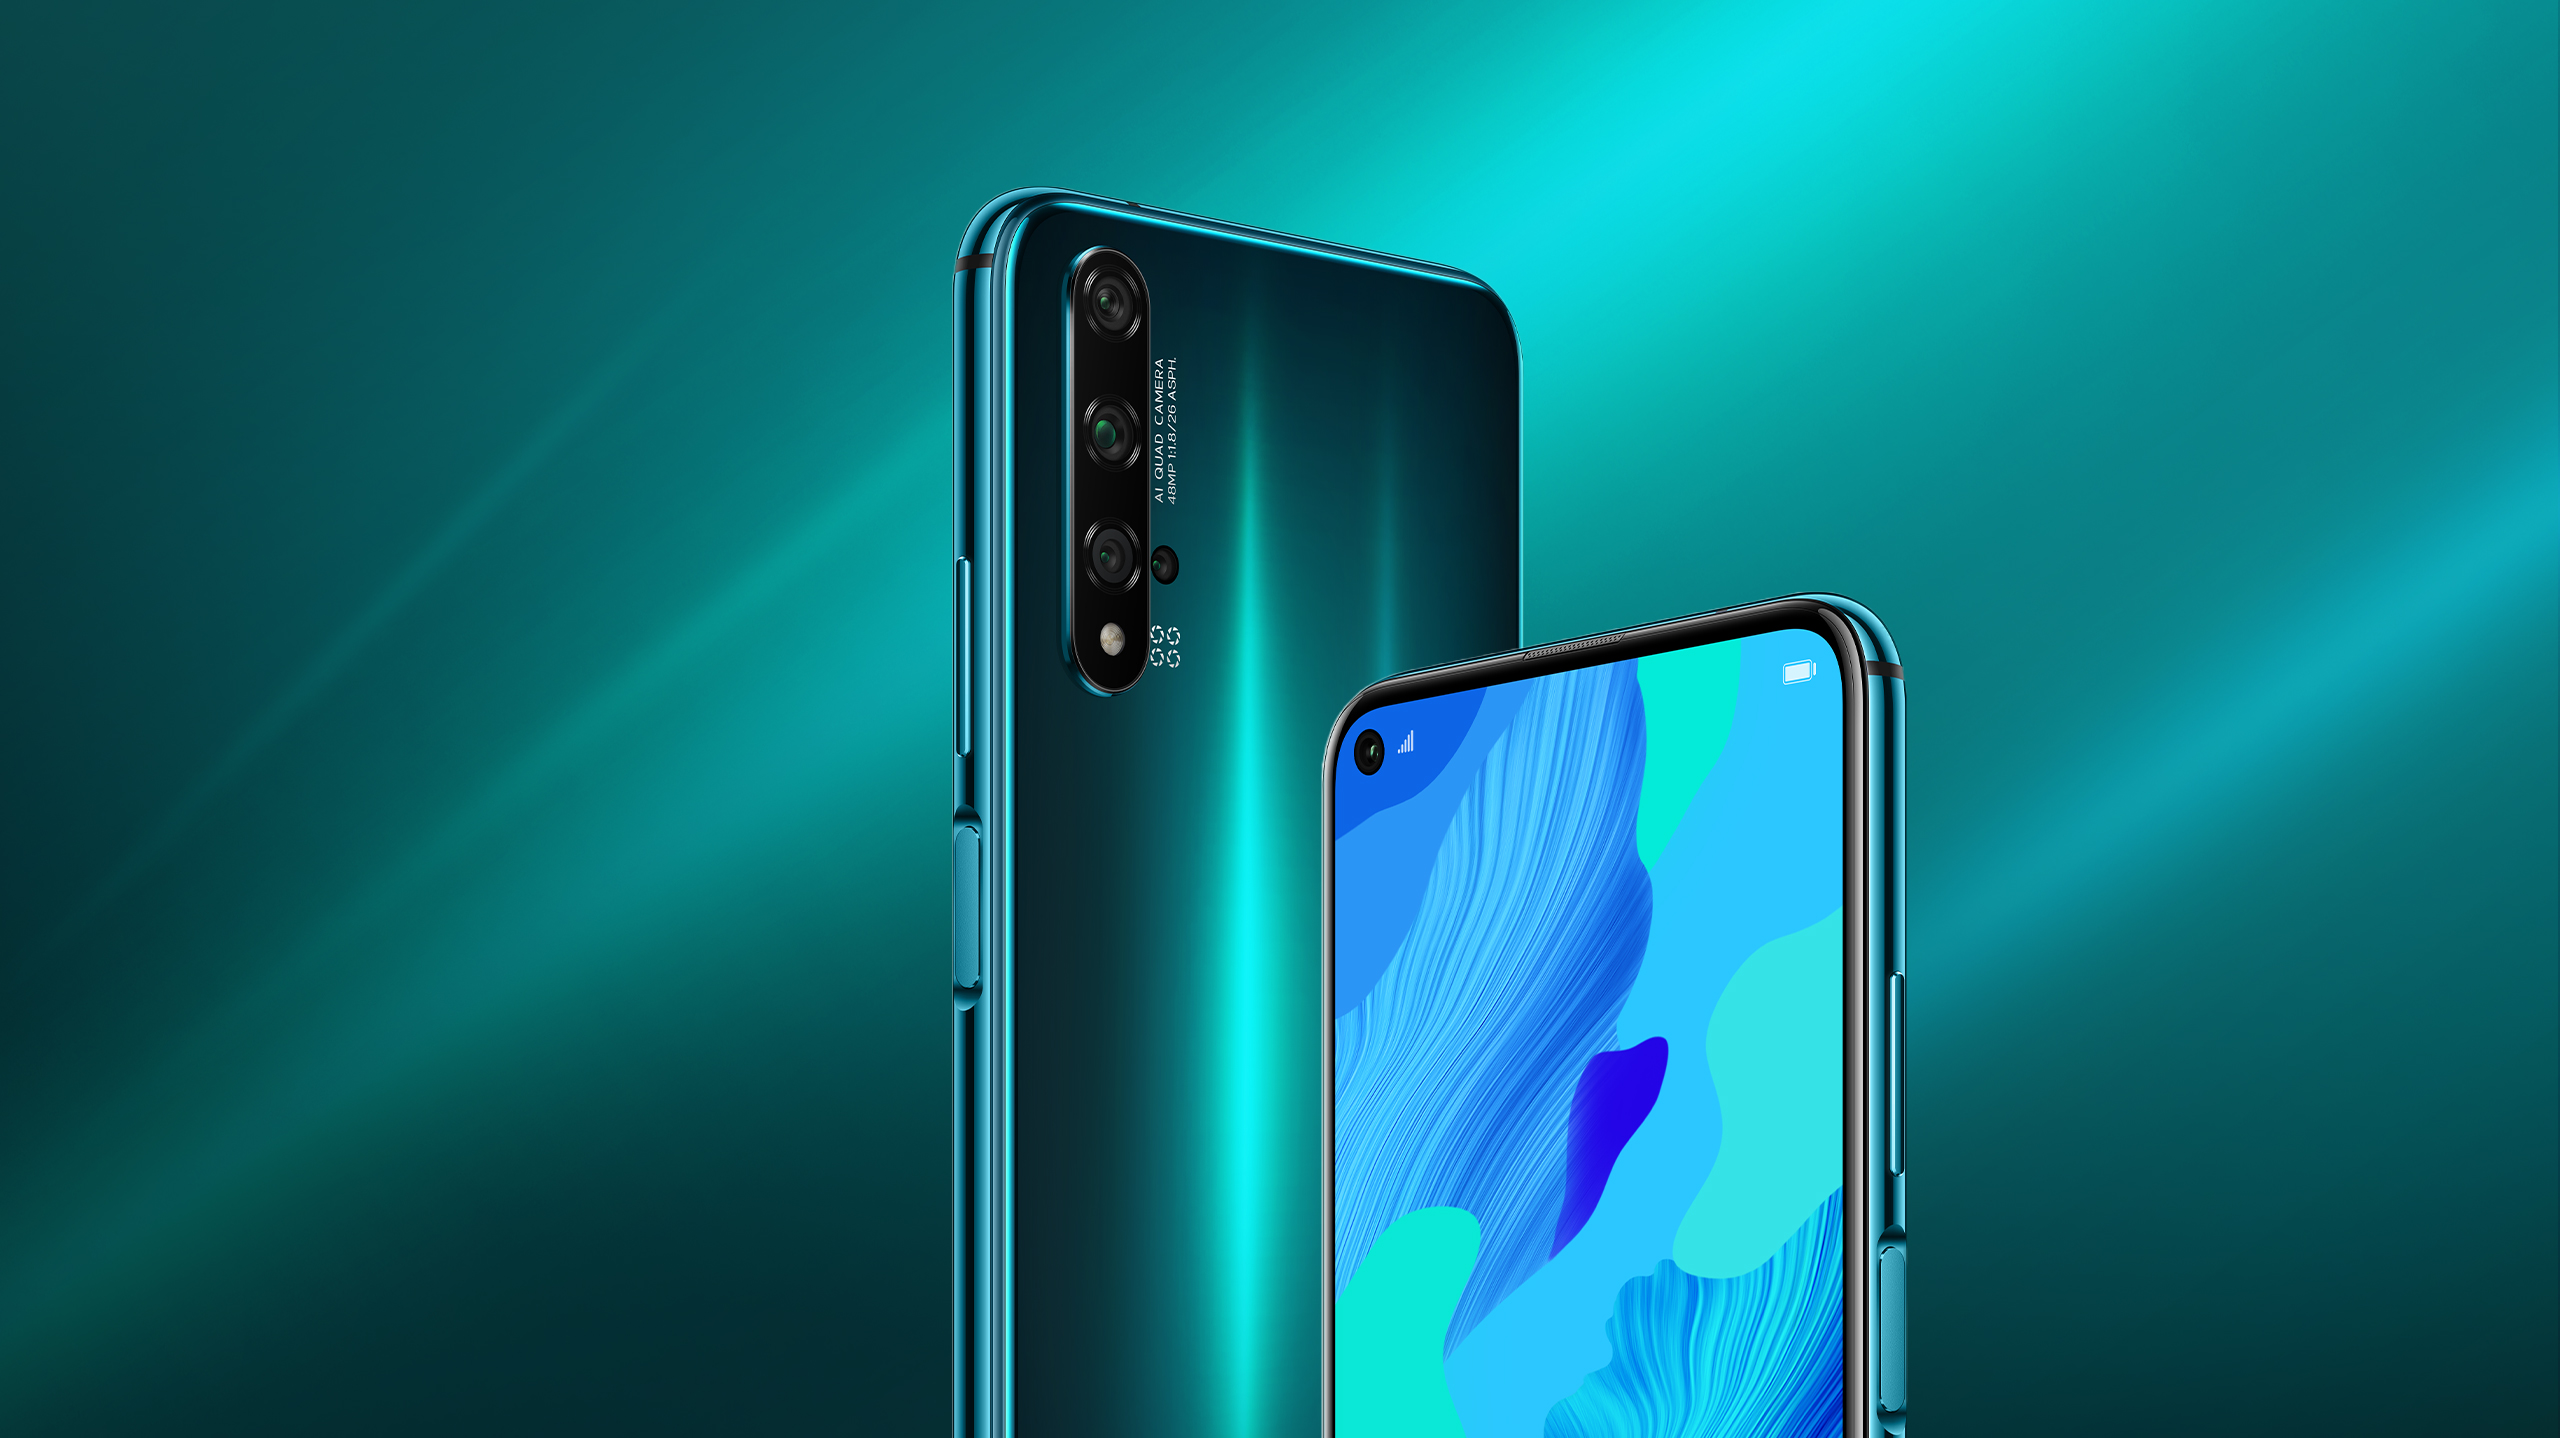 HUAWEI nova 5T color blue